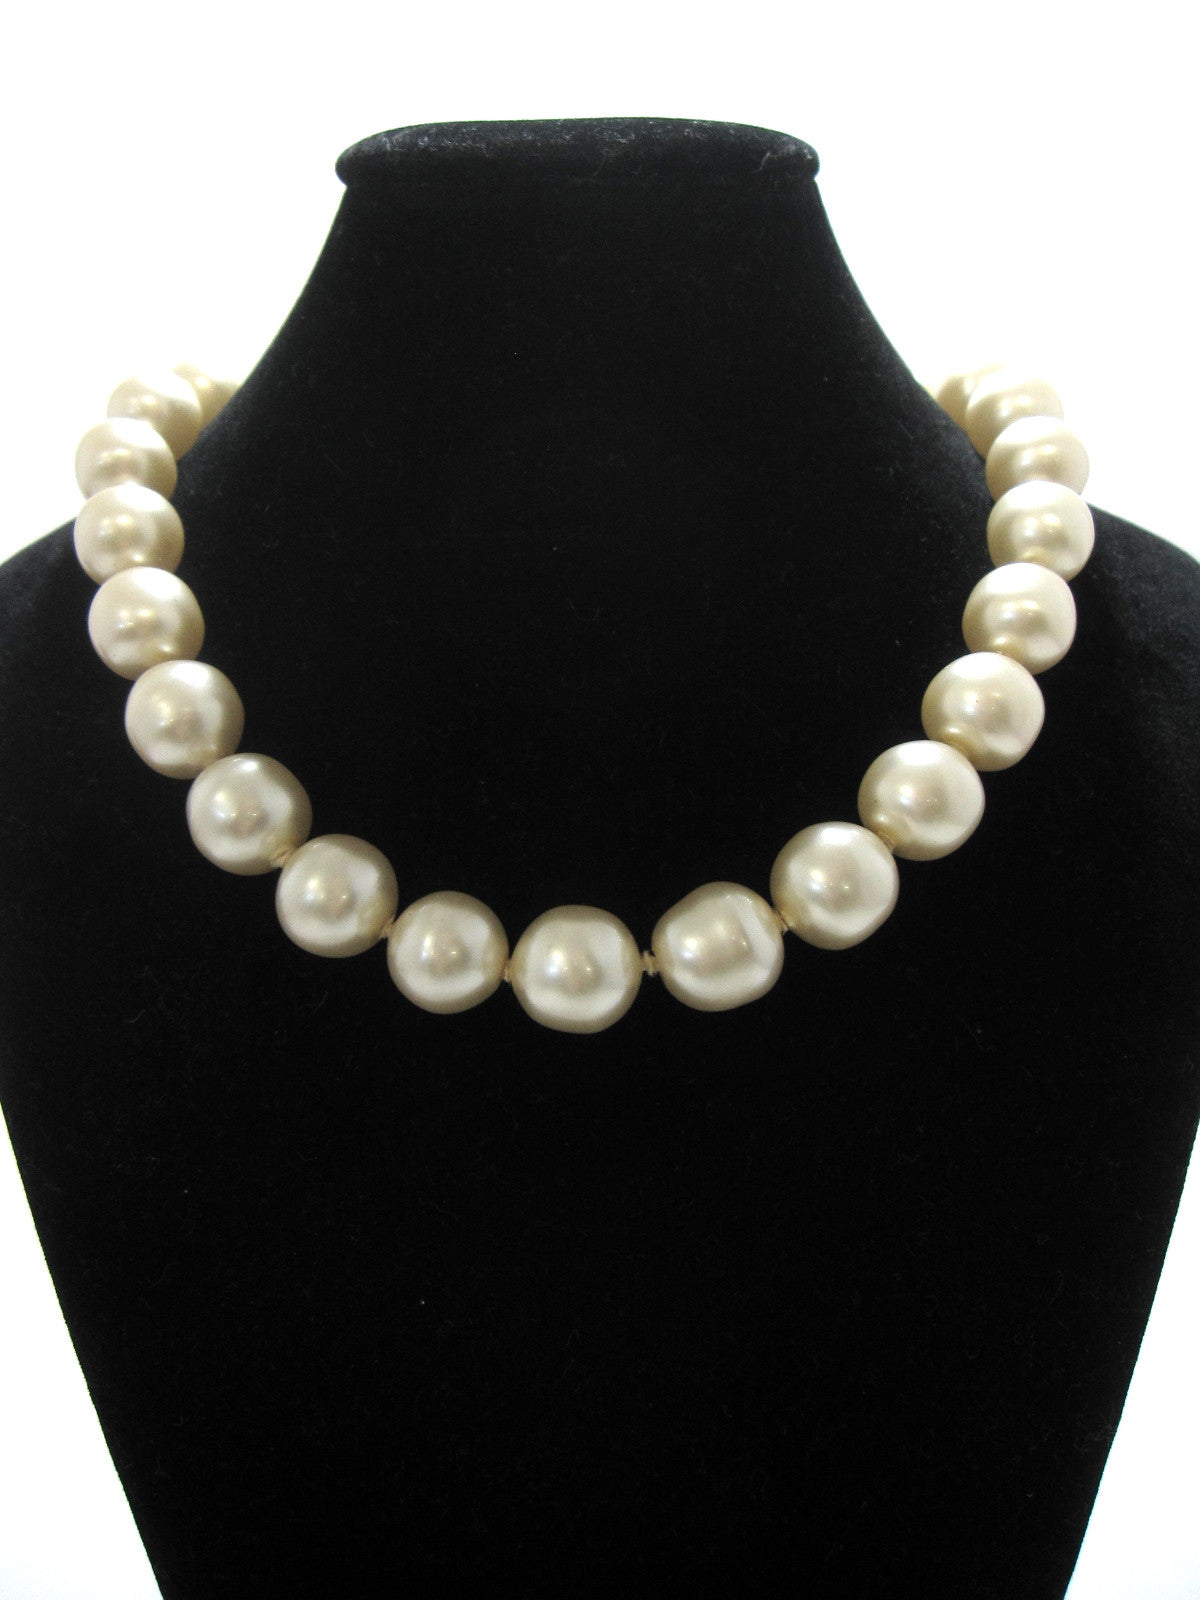 SOLD OUT: Vintage CHANEL large classic faux pearl necklace with golden closure with an embossed logo. Classic jewelry piece for any season